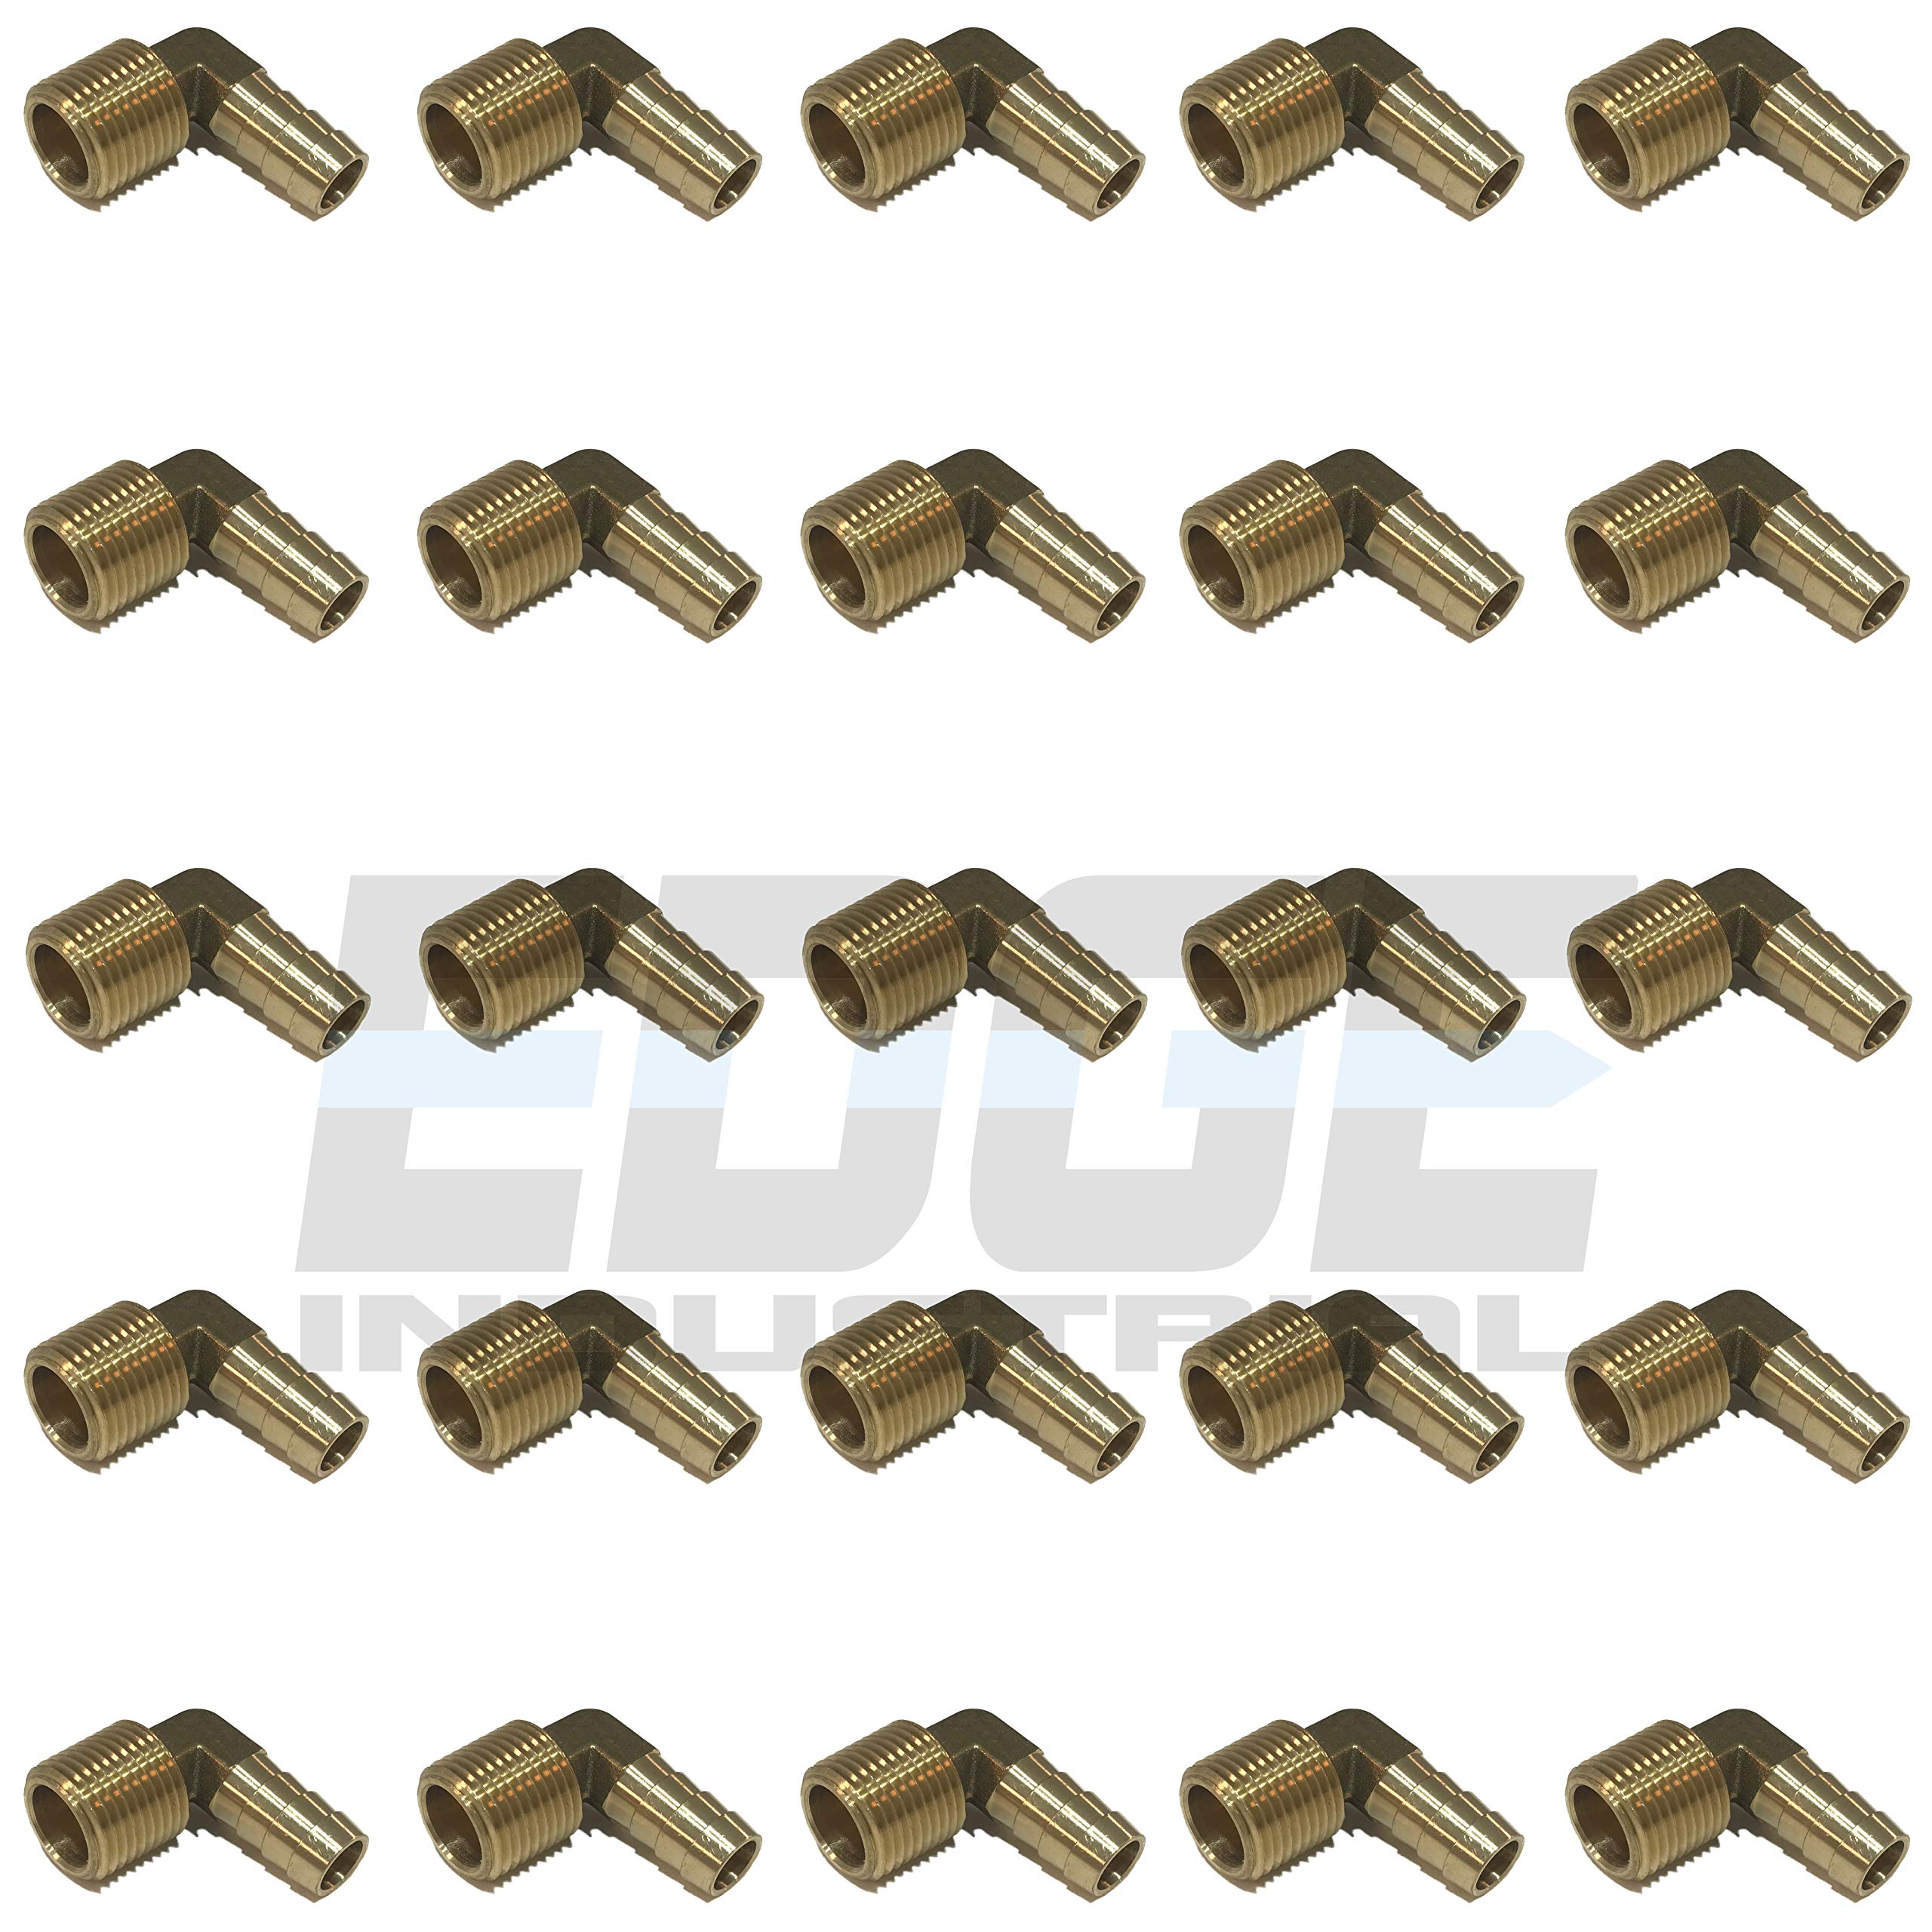 EDGE INDUSTRIAL 1/2'' Hose ID to 1/2'' Male NPT MNPT 90 Degree Elbow Brass Fitting Fuel / AIR / Water / Oil / Gas / WOG (Qty 25)